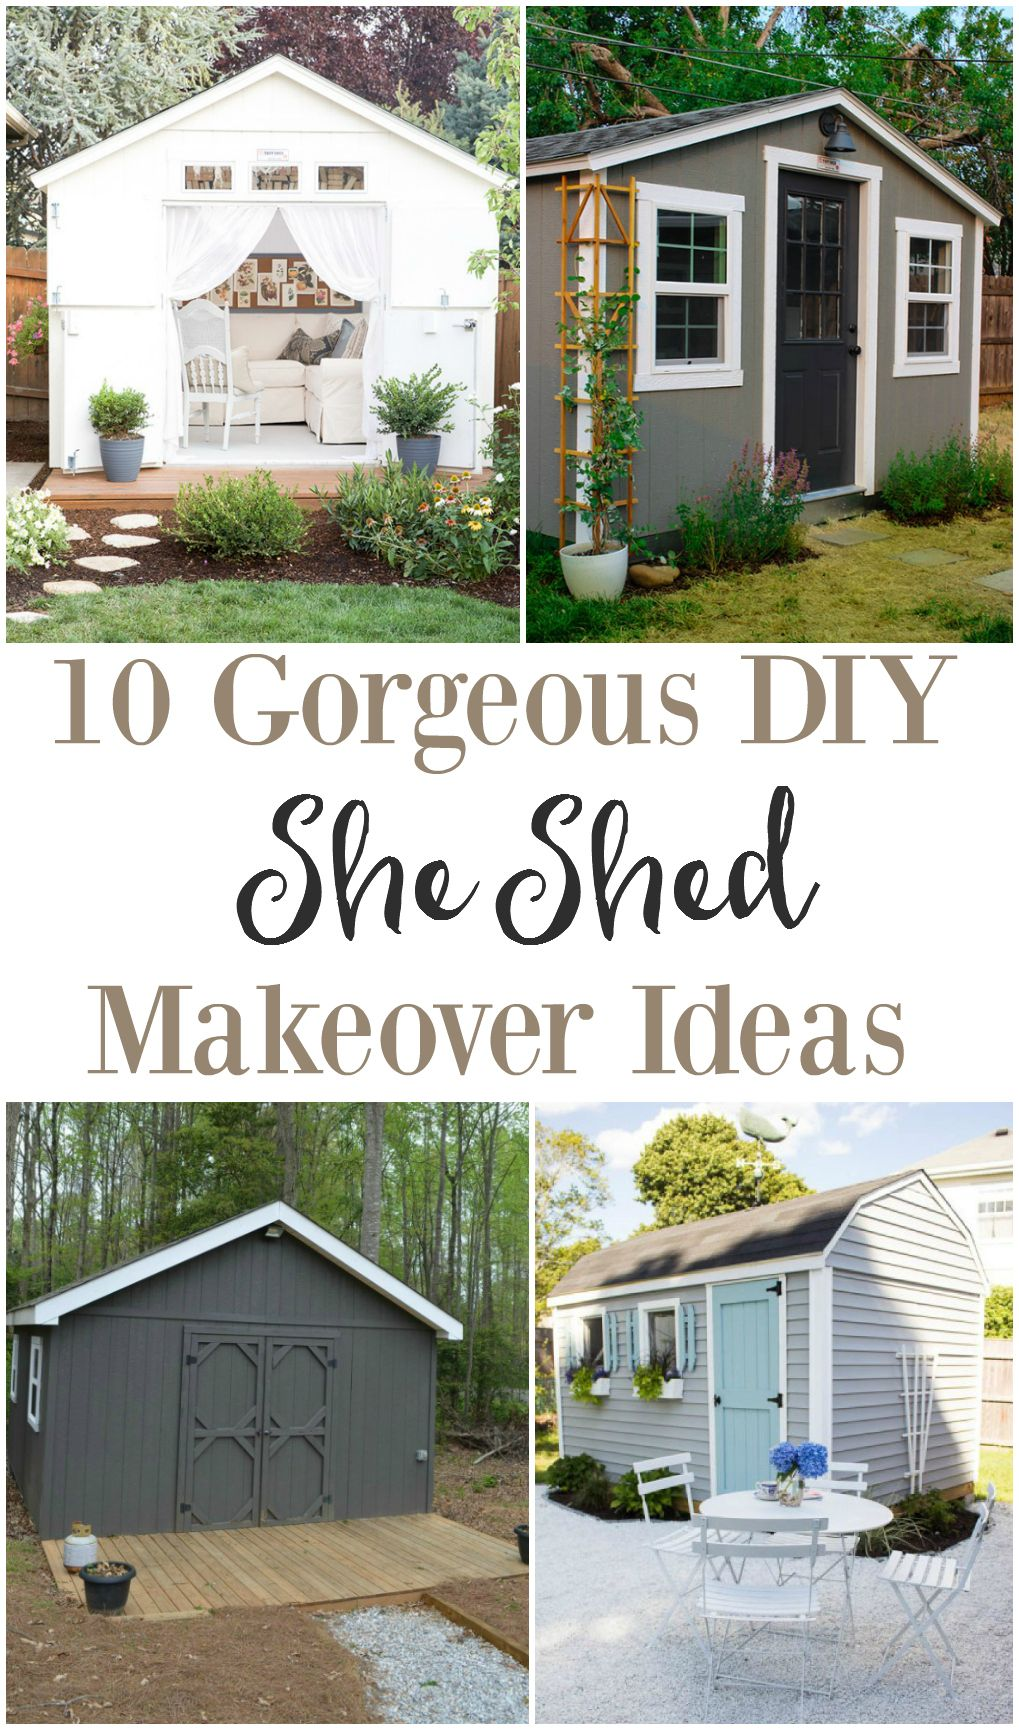 She Shed Makeover Ideas Outdoor Living Shed Makeover